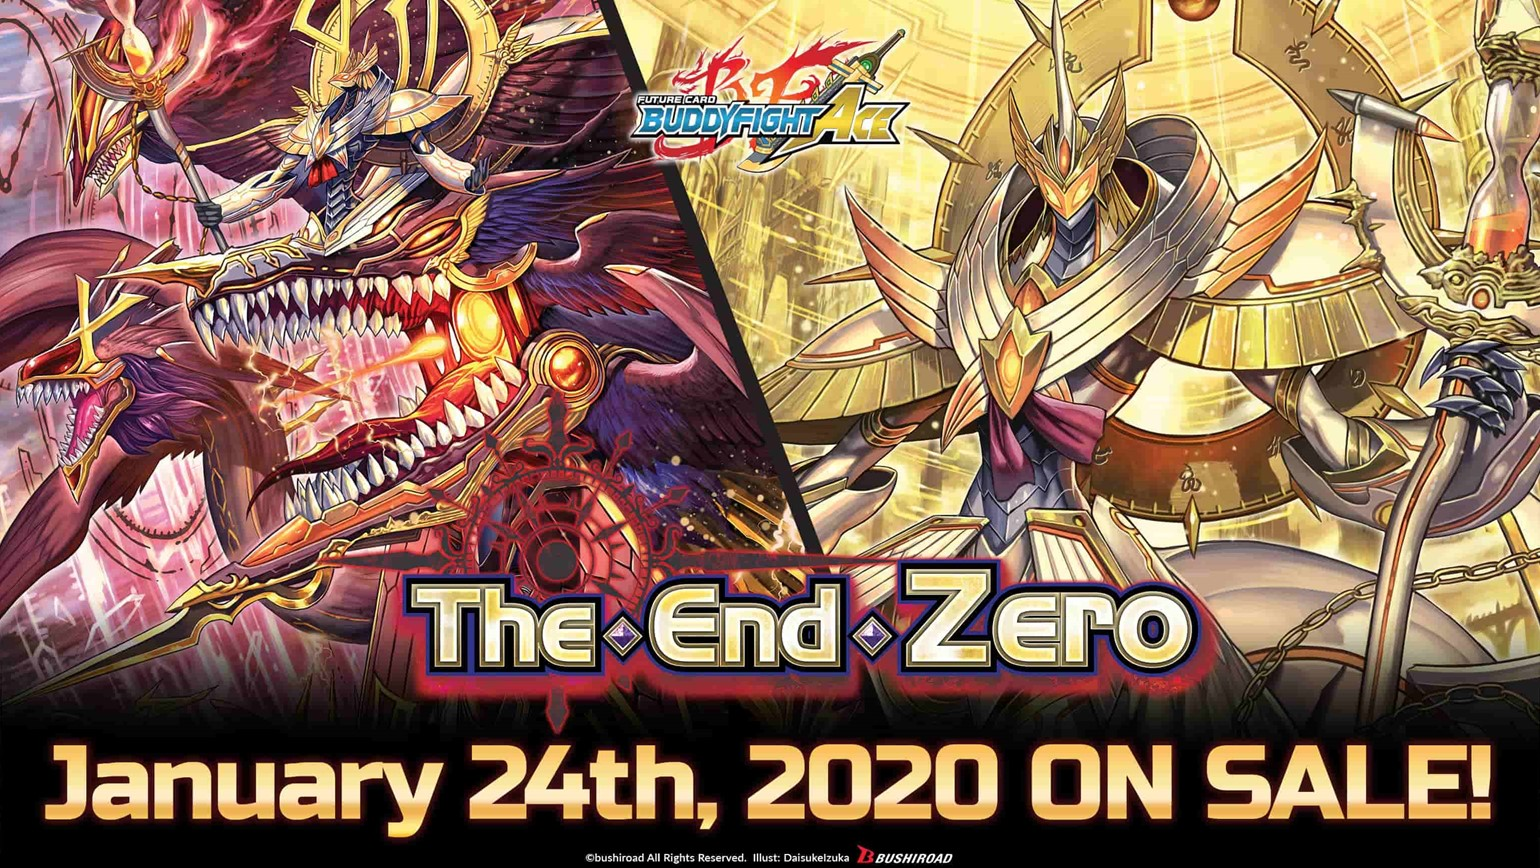 Future Card Buddyfight Ace Special Series Vol. 3 The End Zero Coming January 24th